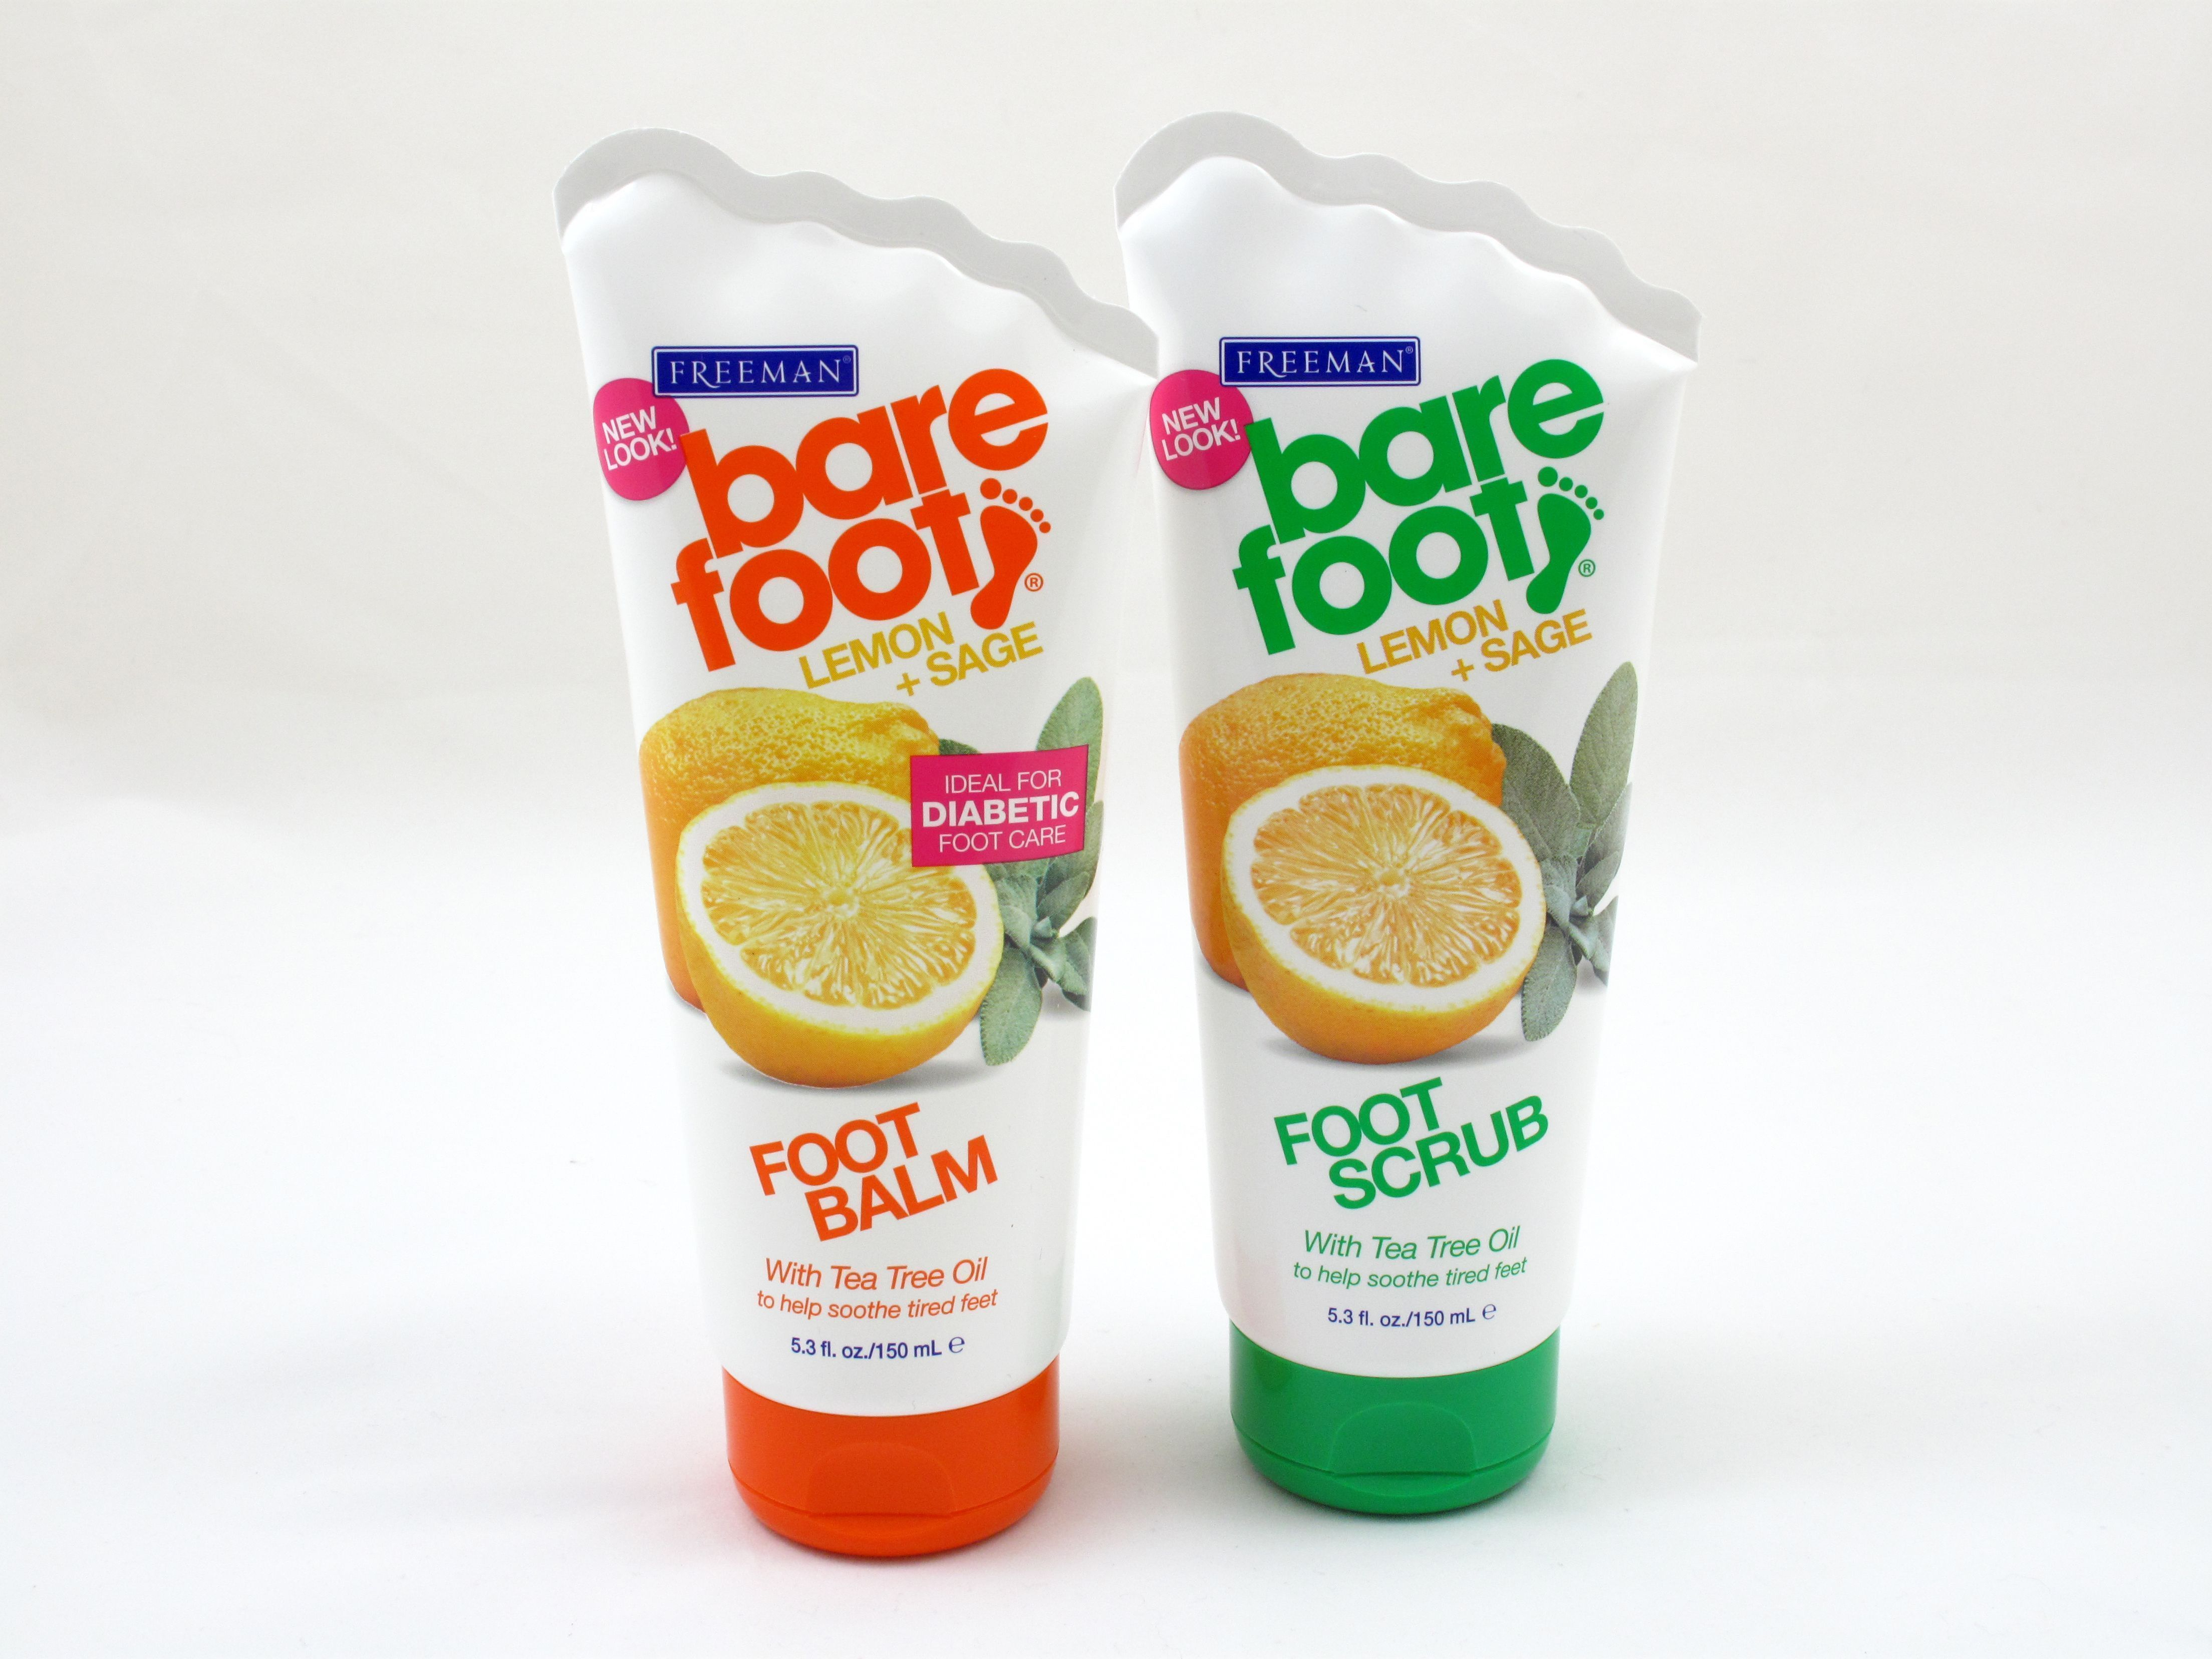 The perfect pair! Exfoliates rough dry patches on soles and heels with a combination of Pumice, Walnut Shell and Sugar. The revitalizing foot balm helps restore moisture to dry cracked skin while softening calluses. Lemon & Sage help to keep feet refreshed and invigorated. Arginine helps maintain foot health by improving tone and texture. #TeaTreeOilForSkin #FootSoakForDryFeet #FootSoakEpsomSalt #SkinCareBlockedPores #crackedskinonheels The perfect pair! Exfoliates rough dry patches on soles and #crackedskinonheels